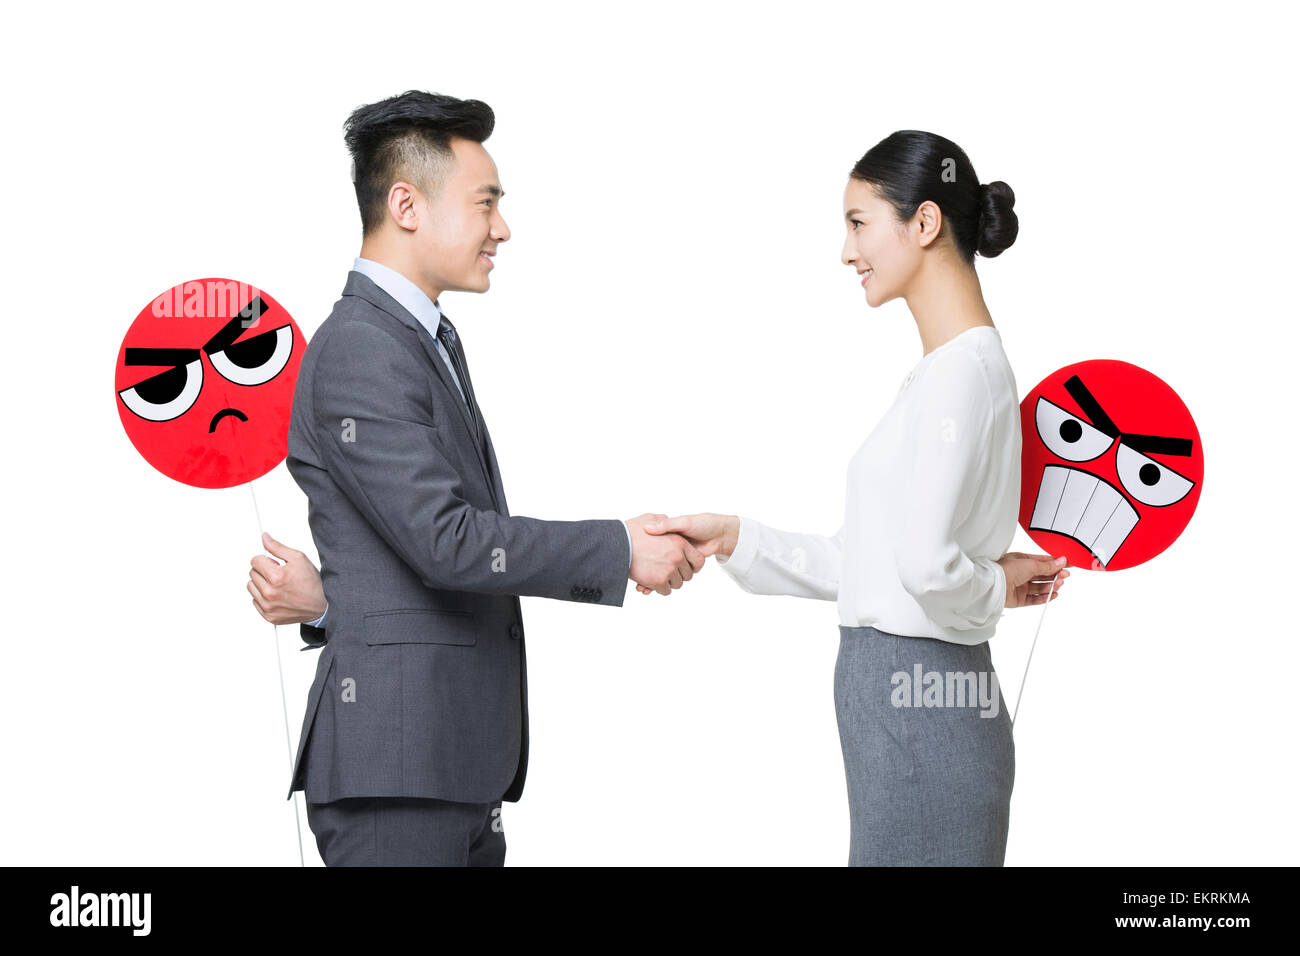 Business person shaking hands with angry emoticon faces behind their backs - Stock Image